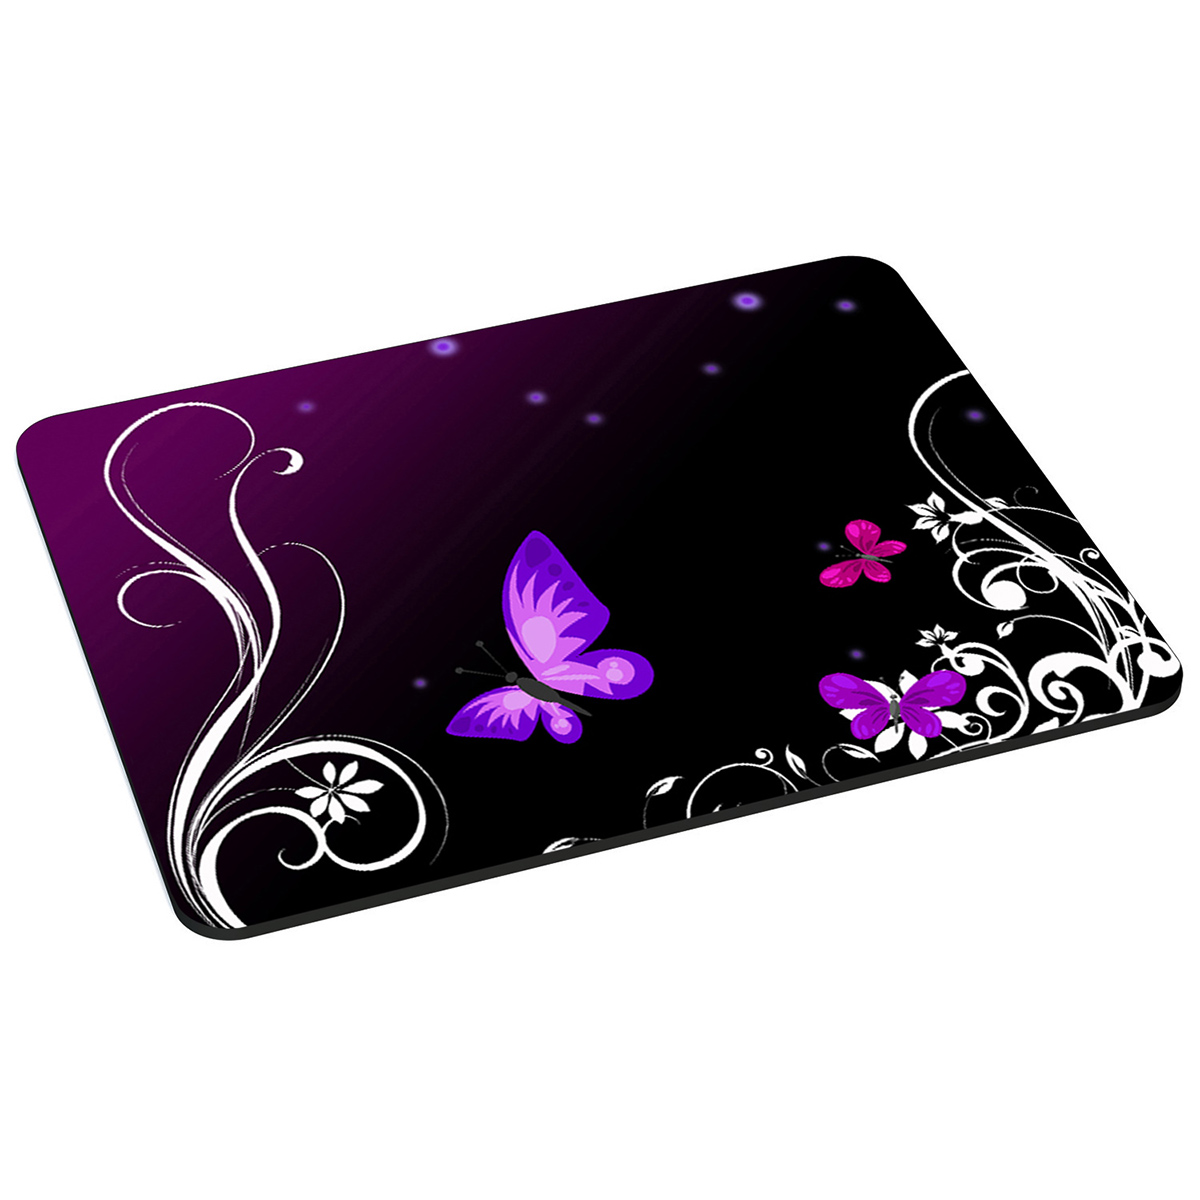 PEDEA Design Mauspad, purple butterfly